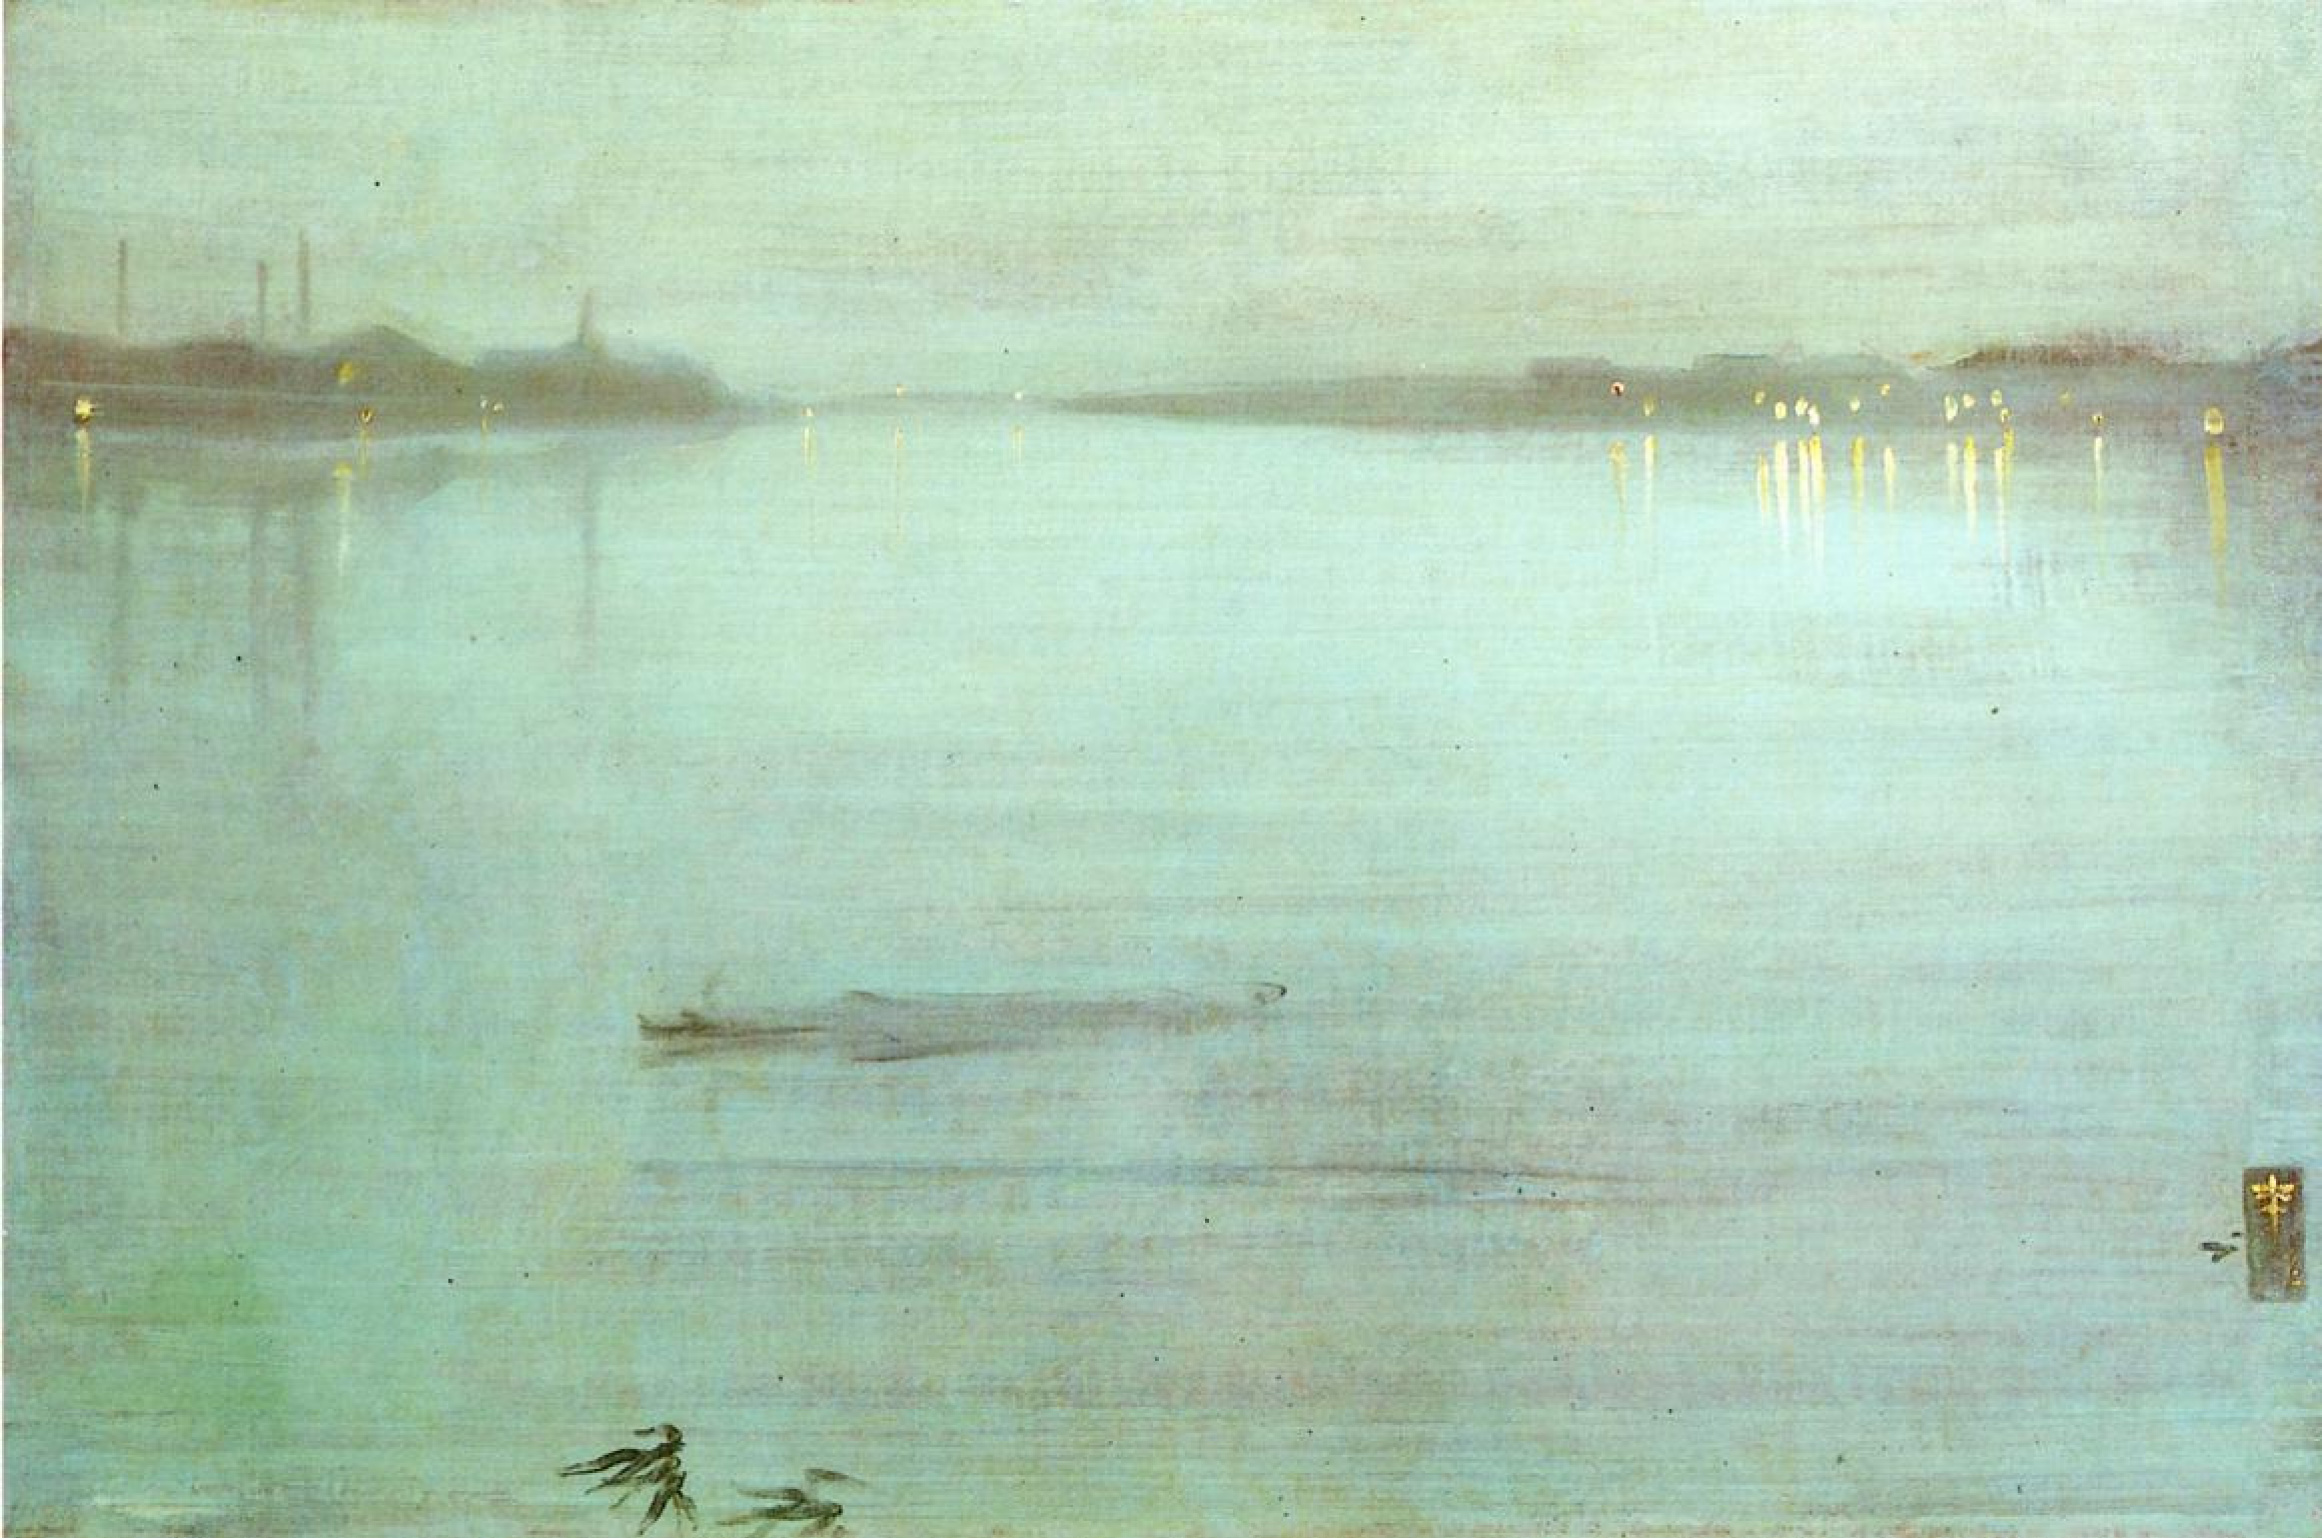 James Abbot McNeill Whistler. Nocturne: Blue and silver - cremorne Lights